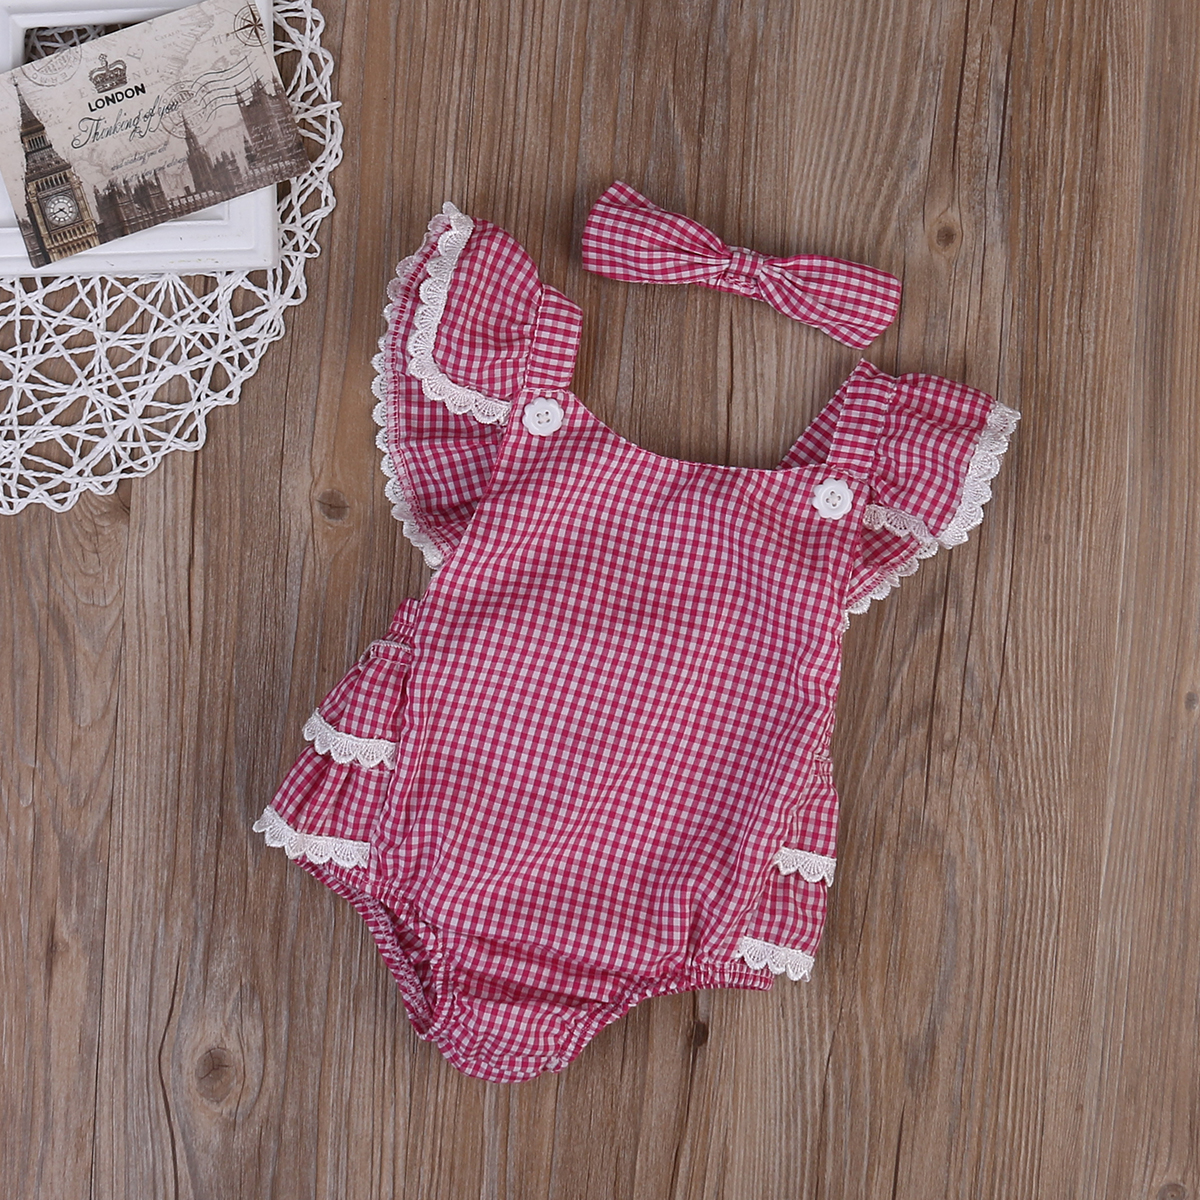 2pcs Baby Set Cute Infant Baby Girls Clothes Summer Flying Sleevless Lace Red Plaid Floral Romper Jumpsuit+Headband Outfits Set pudcoco newborn infant baby girls clothes short sleeve floral romper headband summer cute cotton one piece clothes